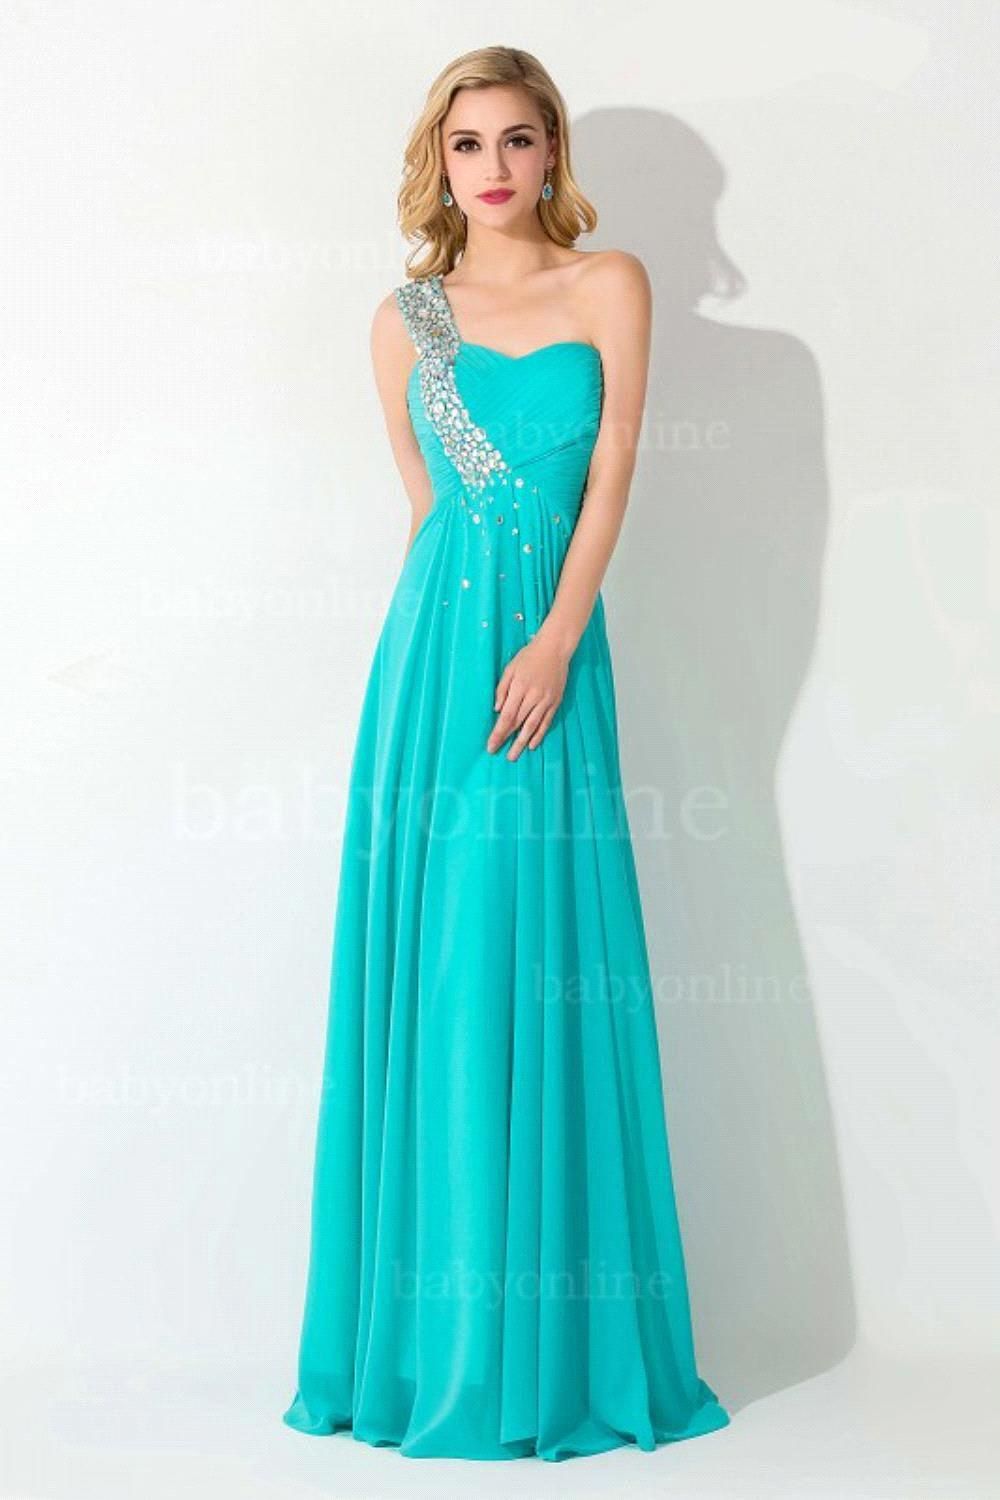 Long Prom Dresses Under 100 Dollars